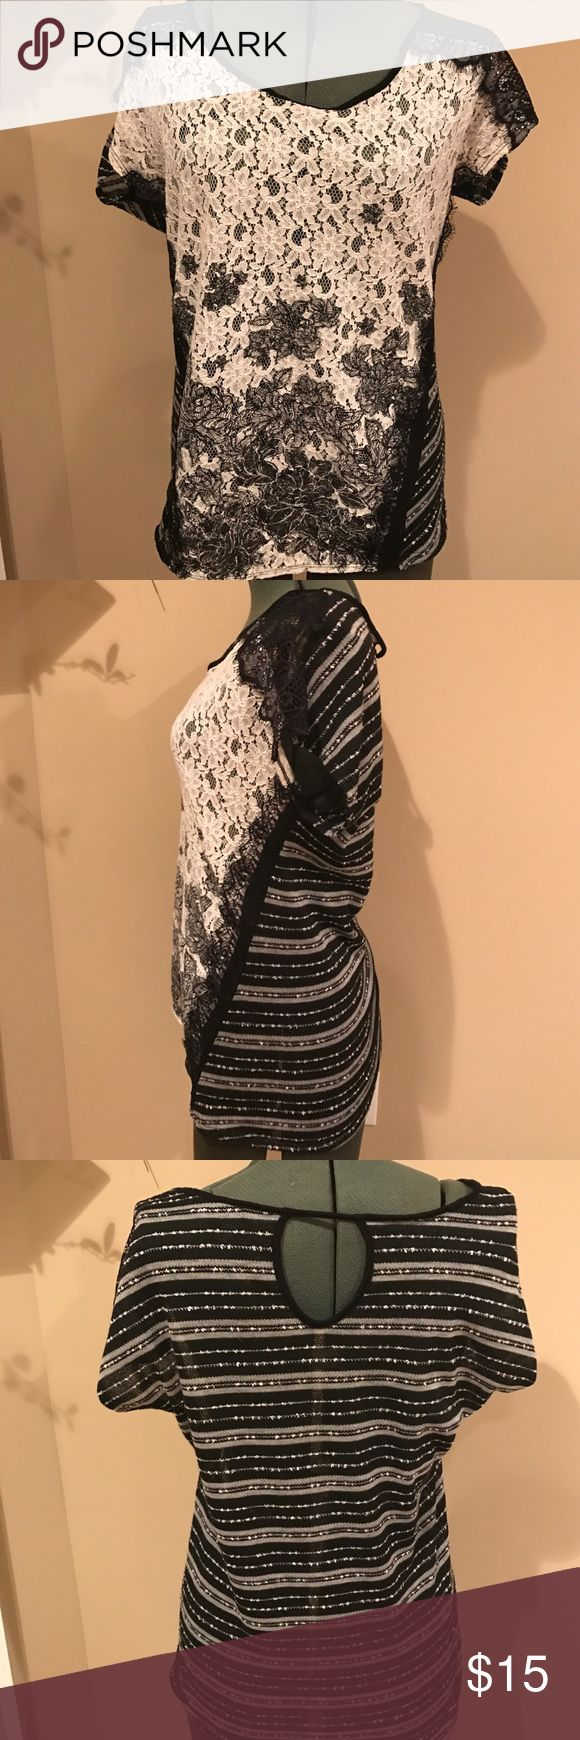 Daytrip Black and White short sleeve shirt sz s Excellent condition Daytrip black and white lace top. It was purchased at Buckle and is in excellent condition. Comes from a smoke free and pet free home. Bundle and save on shipping. Daytrip Tops Tees - Short Sleeve